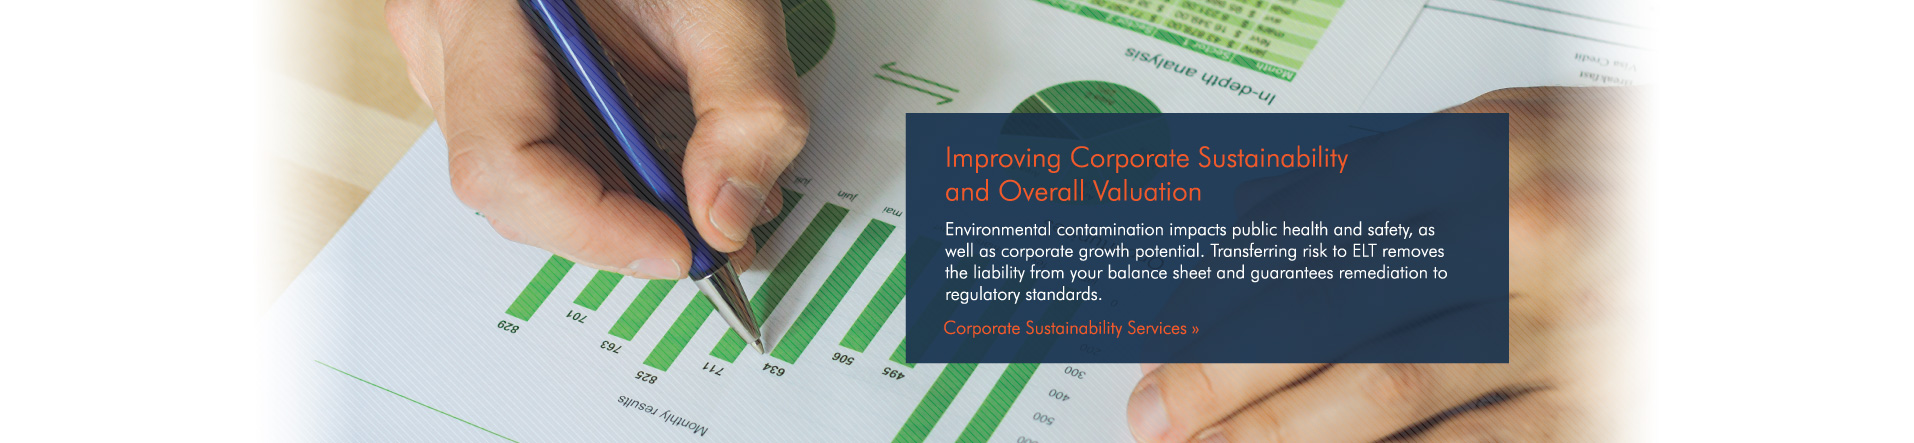 Improving-Corporate-Sustainability